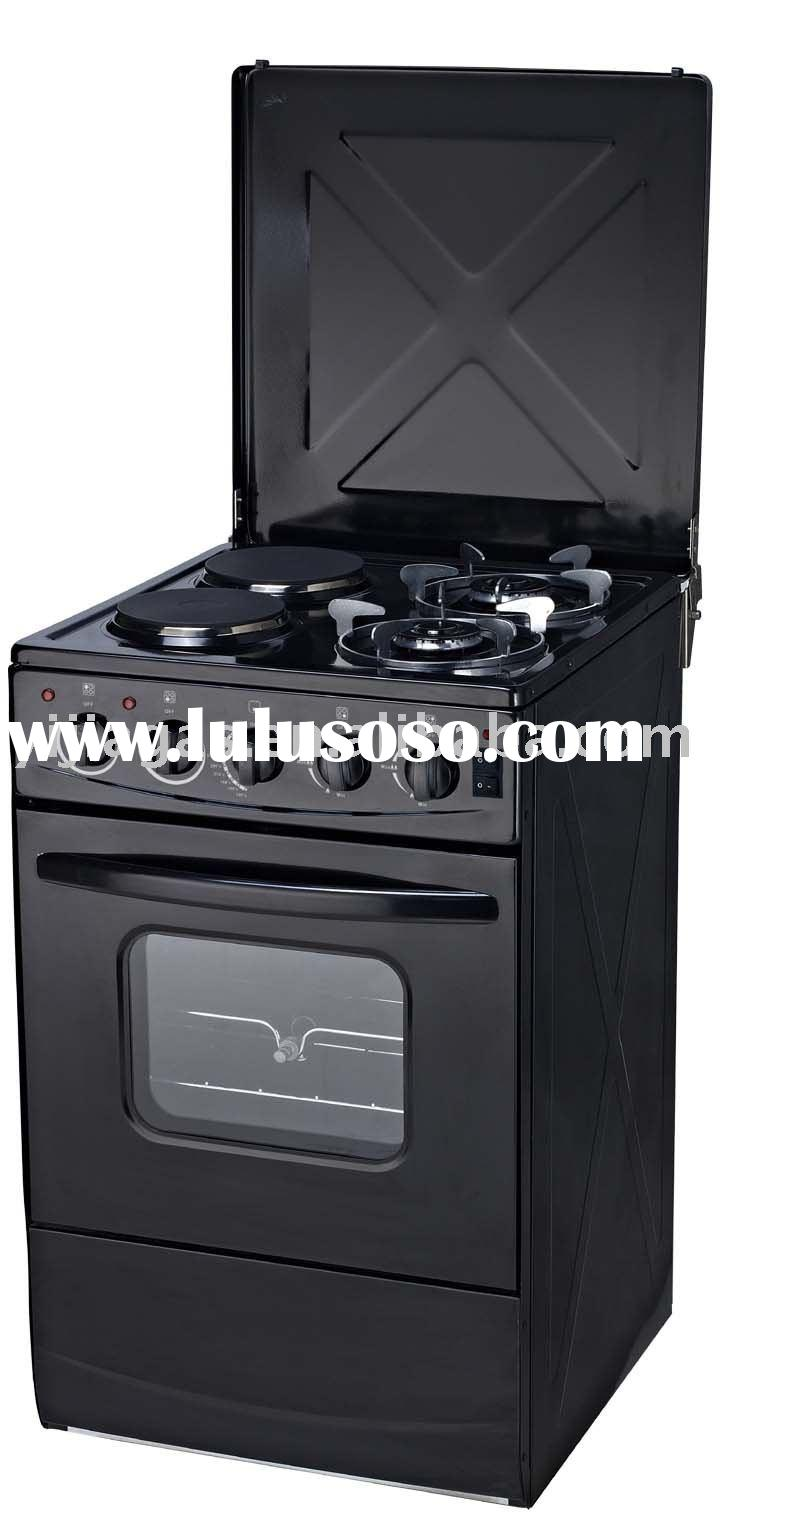 4 burner gas stove with gas oven (JK-04MMSE-2E)